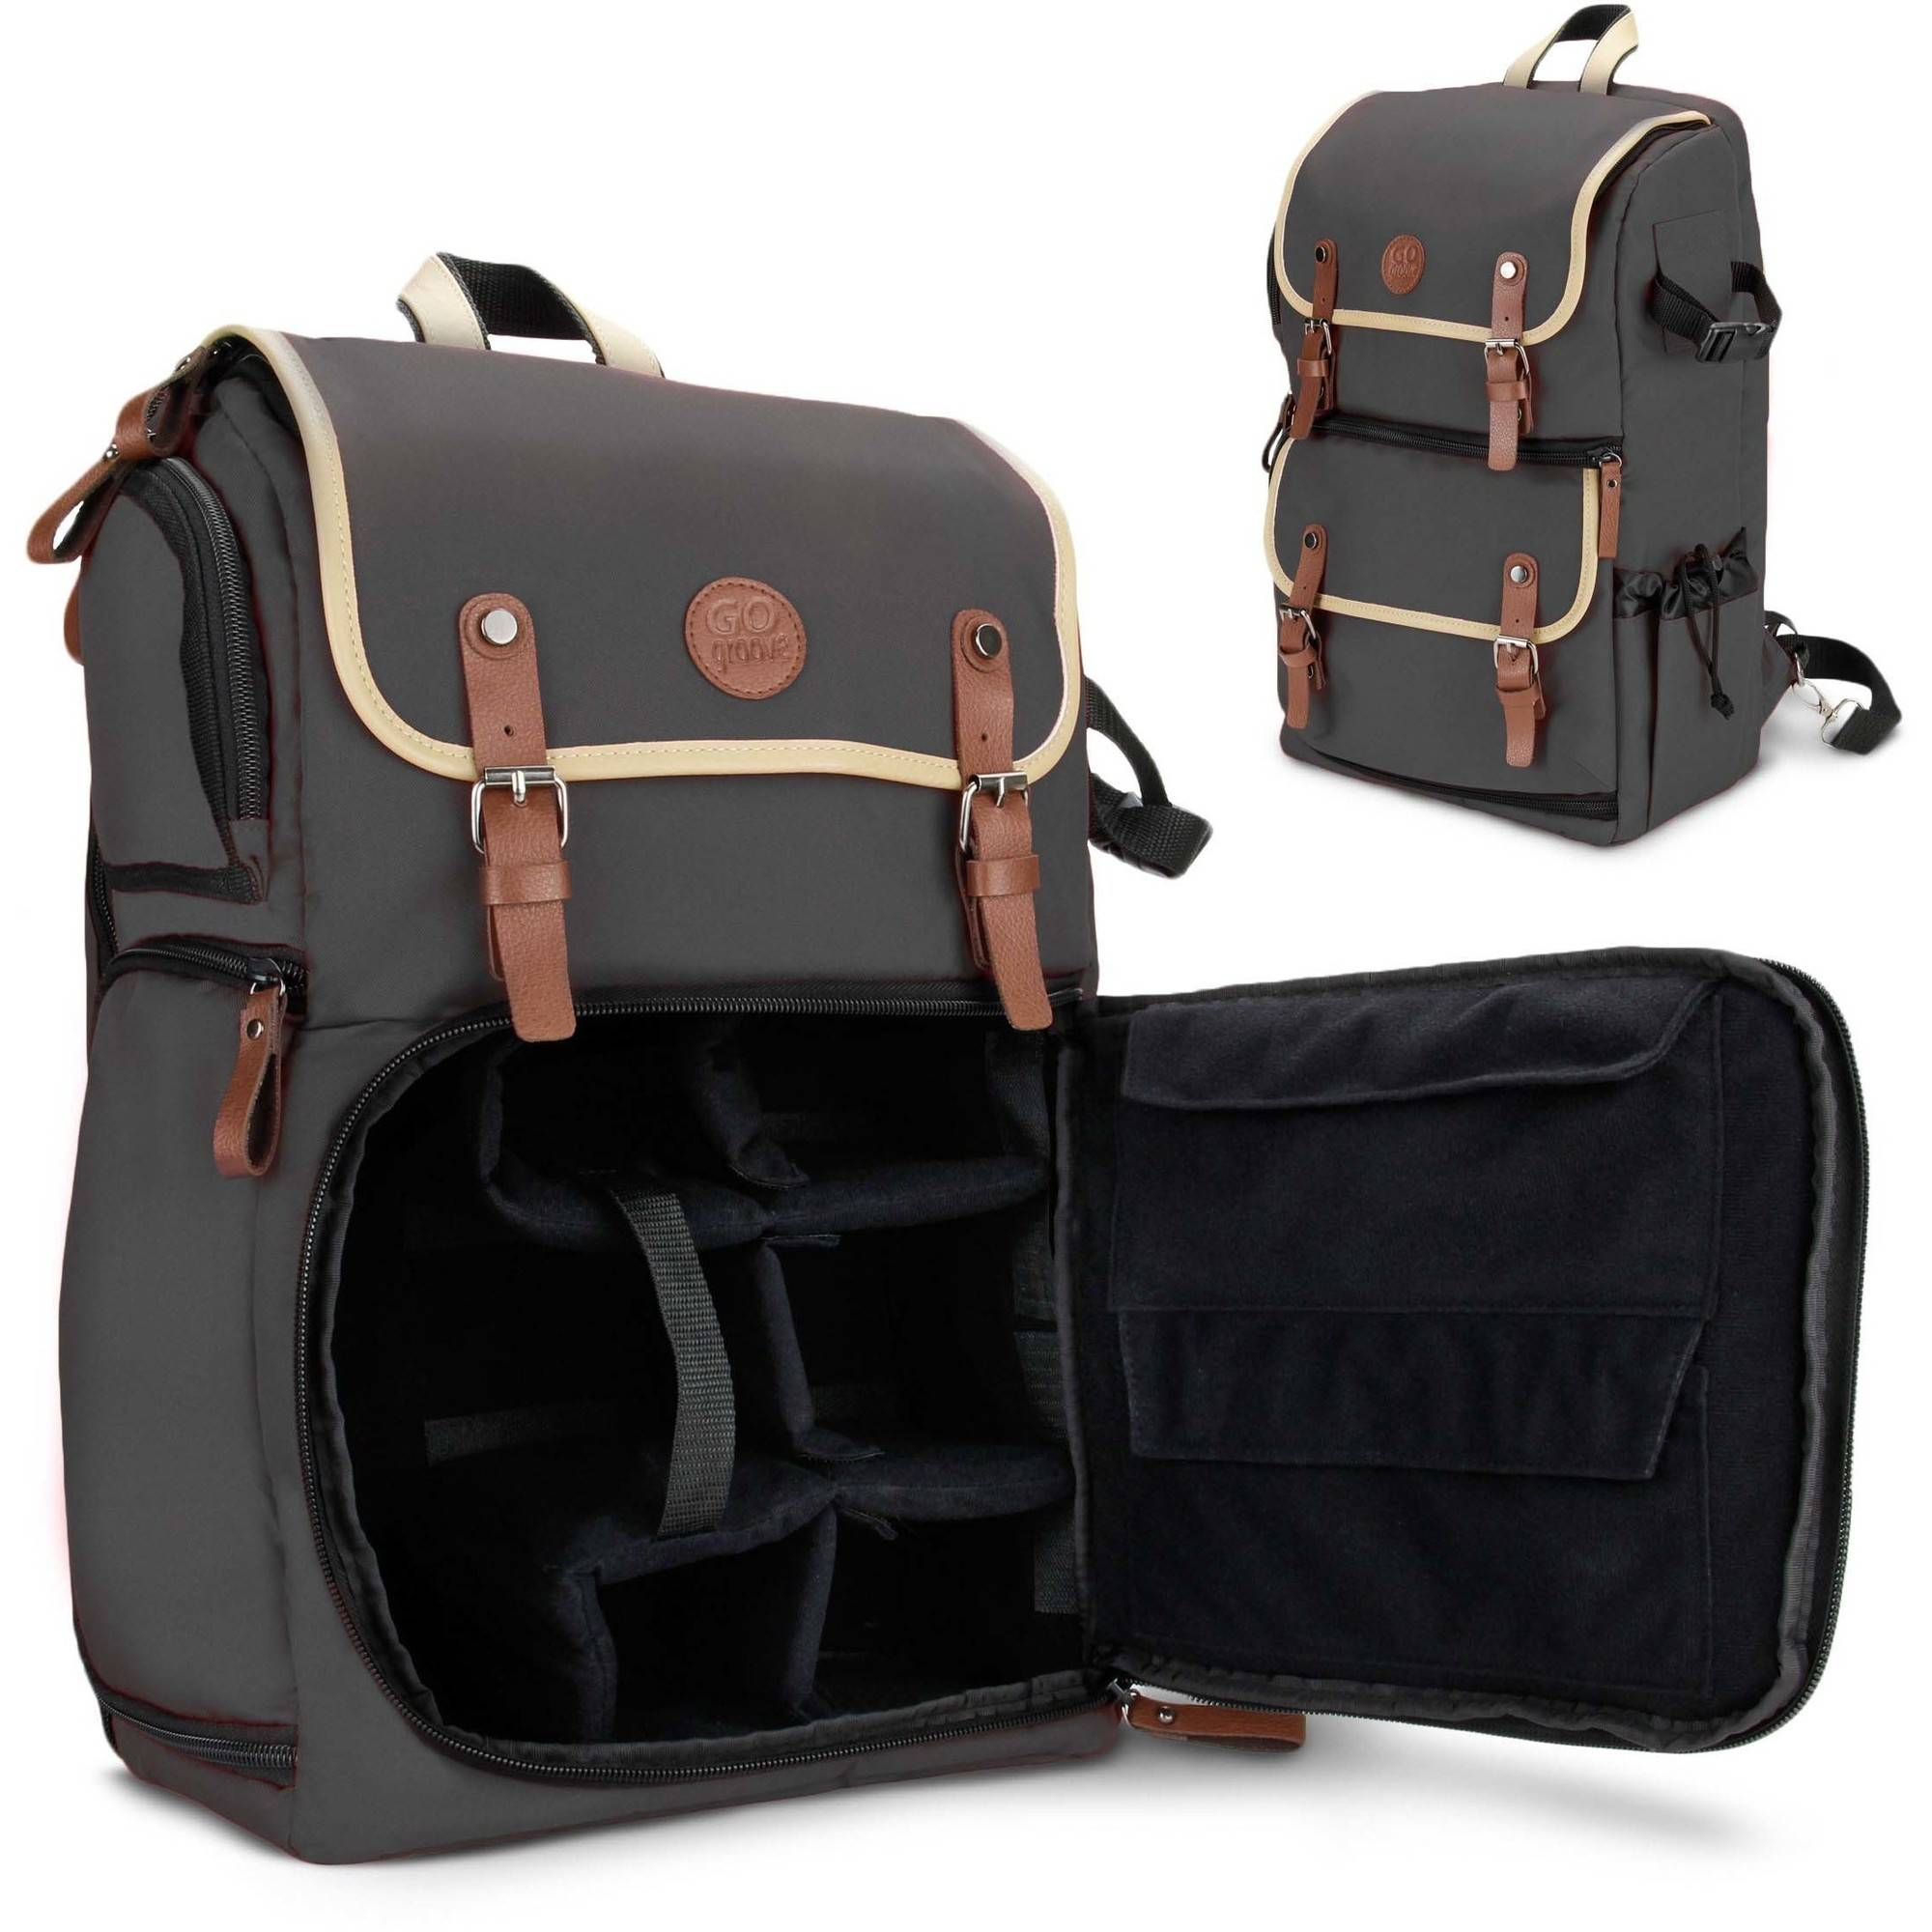 GOgroove Full-size DSLR Camera Backpack Case (Grey) for Photography and Laptop Travel Use with Accessory Storage , Tripod Holder & Weatherproof Rain Cover